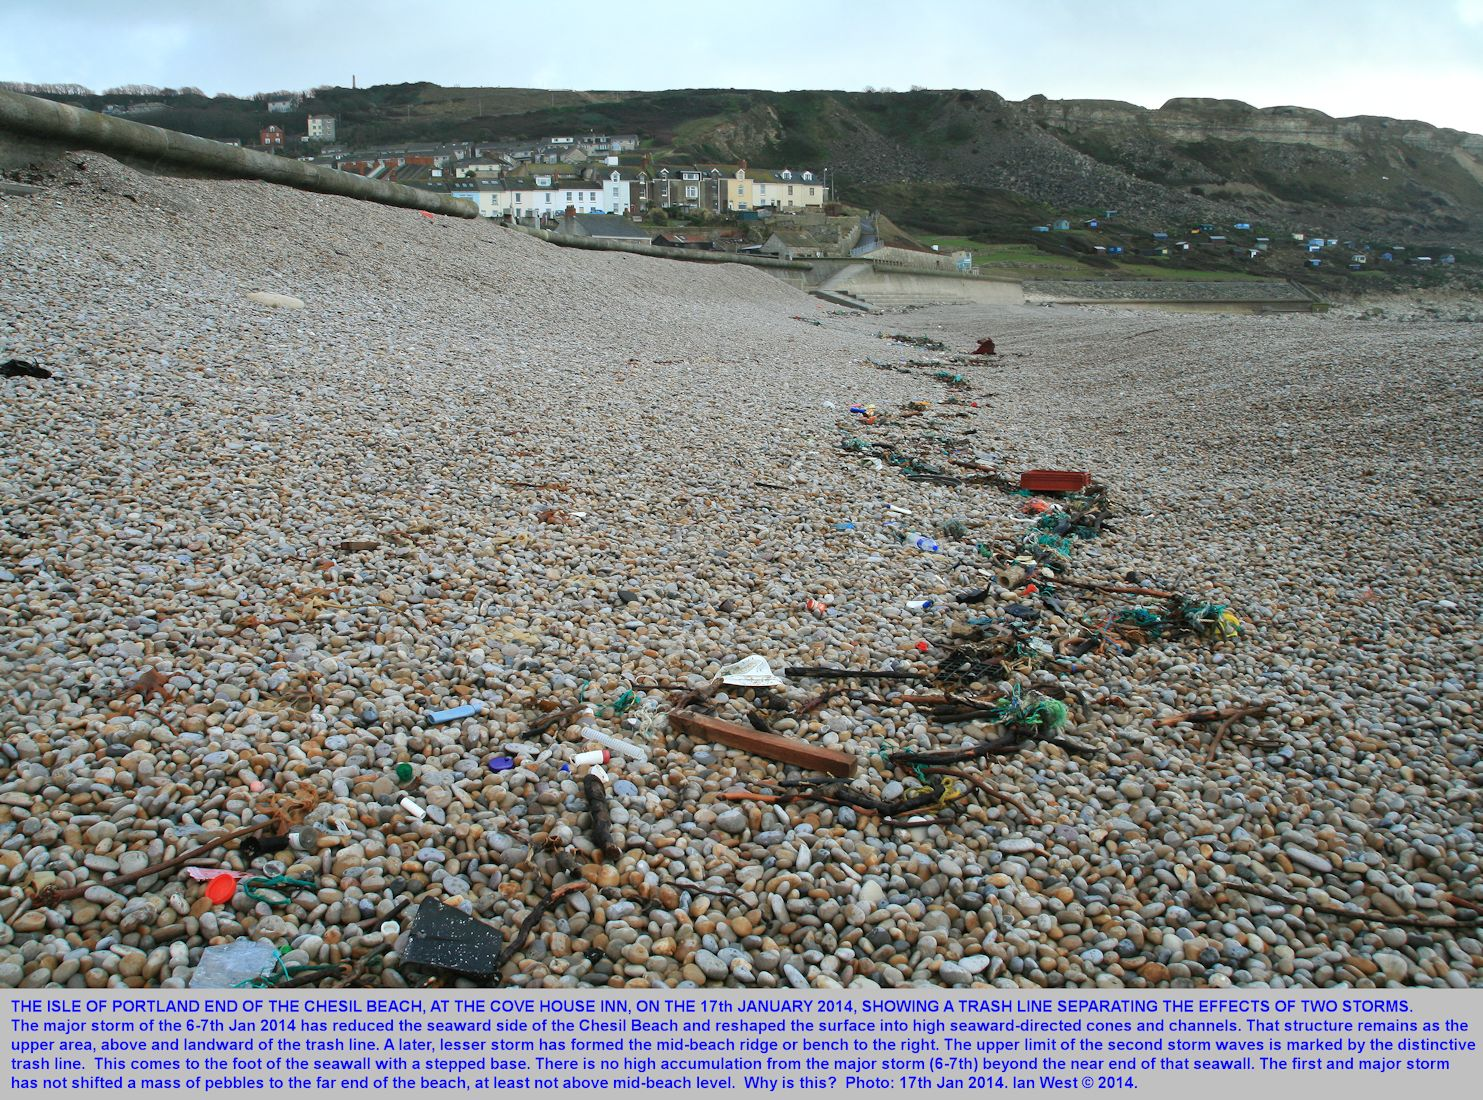 A trash line near the Cove House Inn,   Chesil Beach, Chiswell, Dorset, showing the limits of particular storm activity, Dorset, 17th January 2014